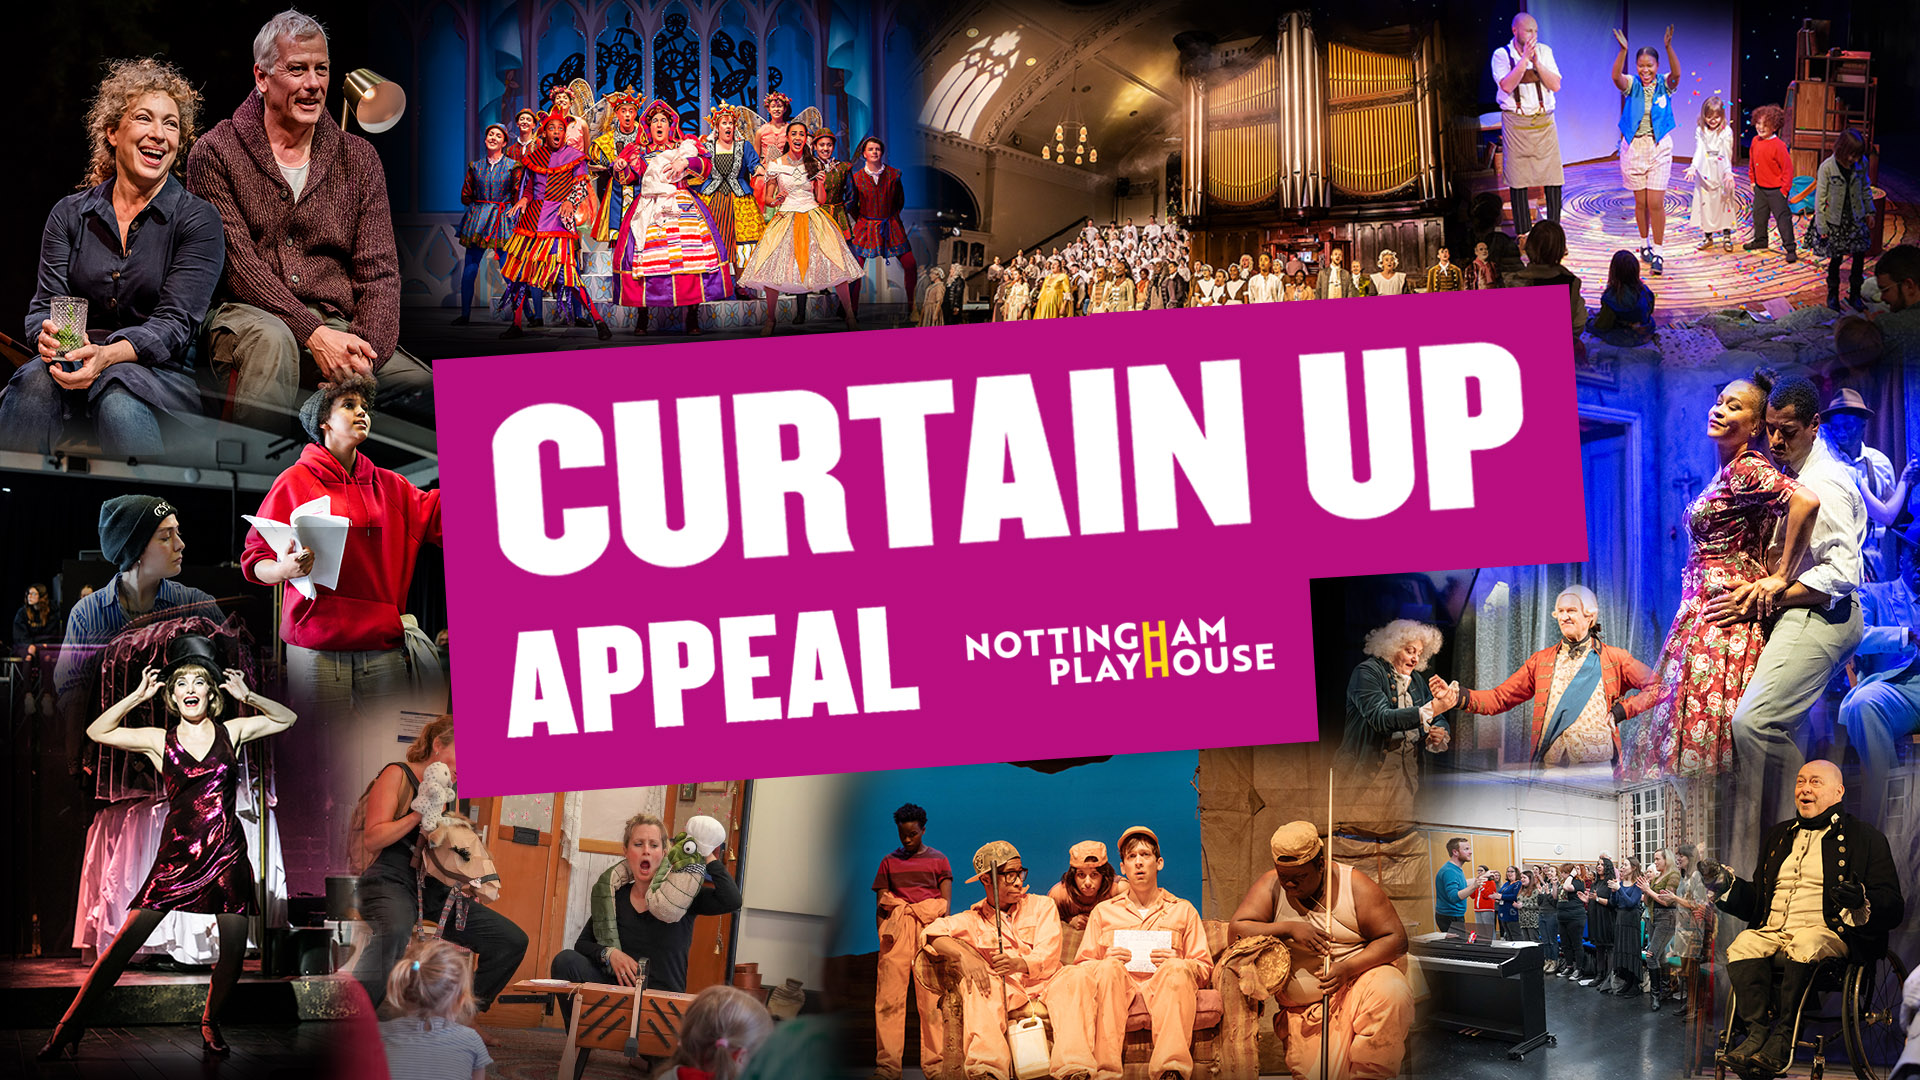 Curtain Up Appeal